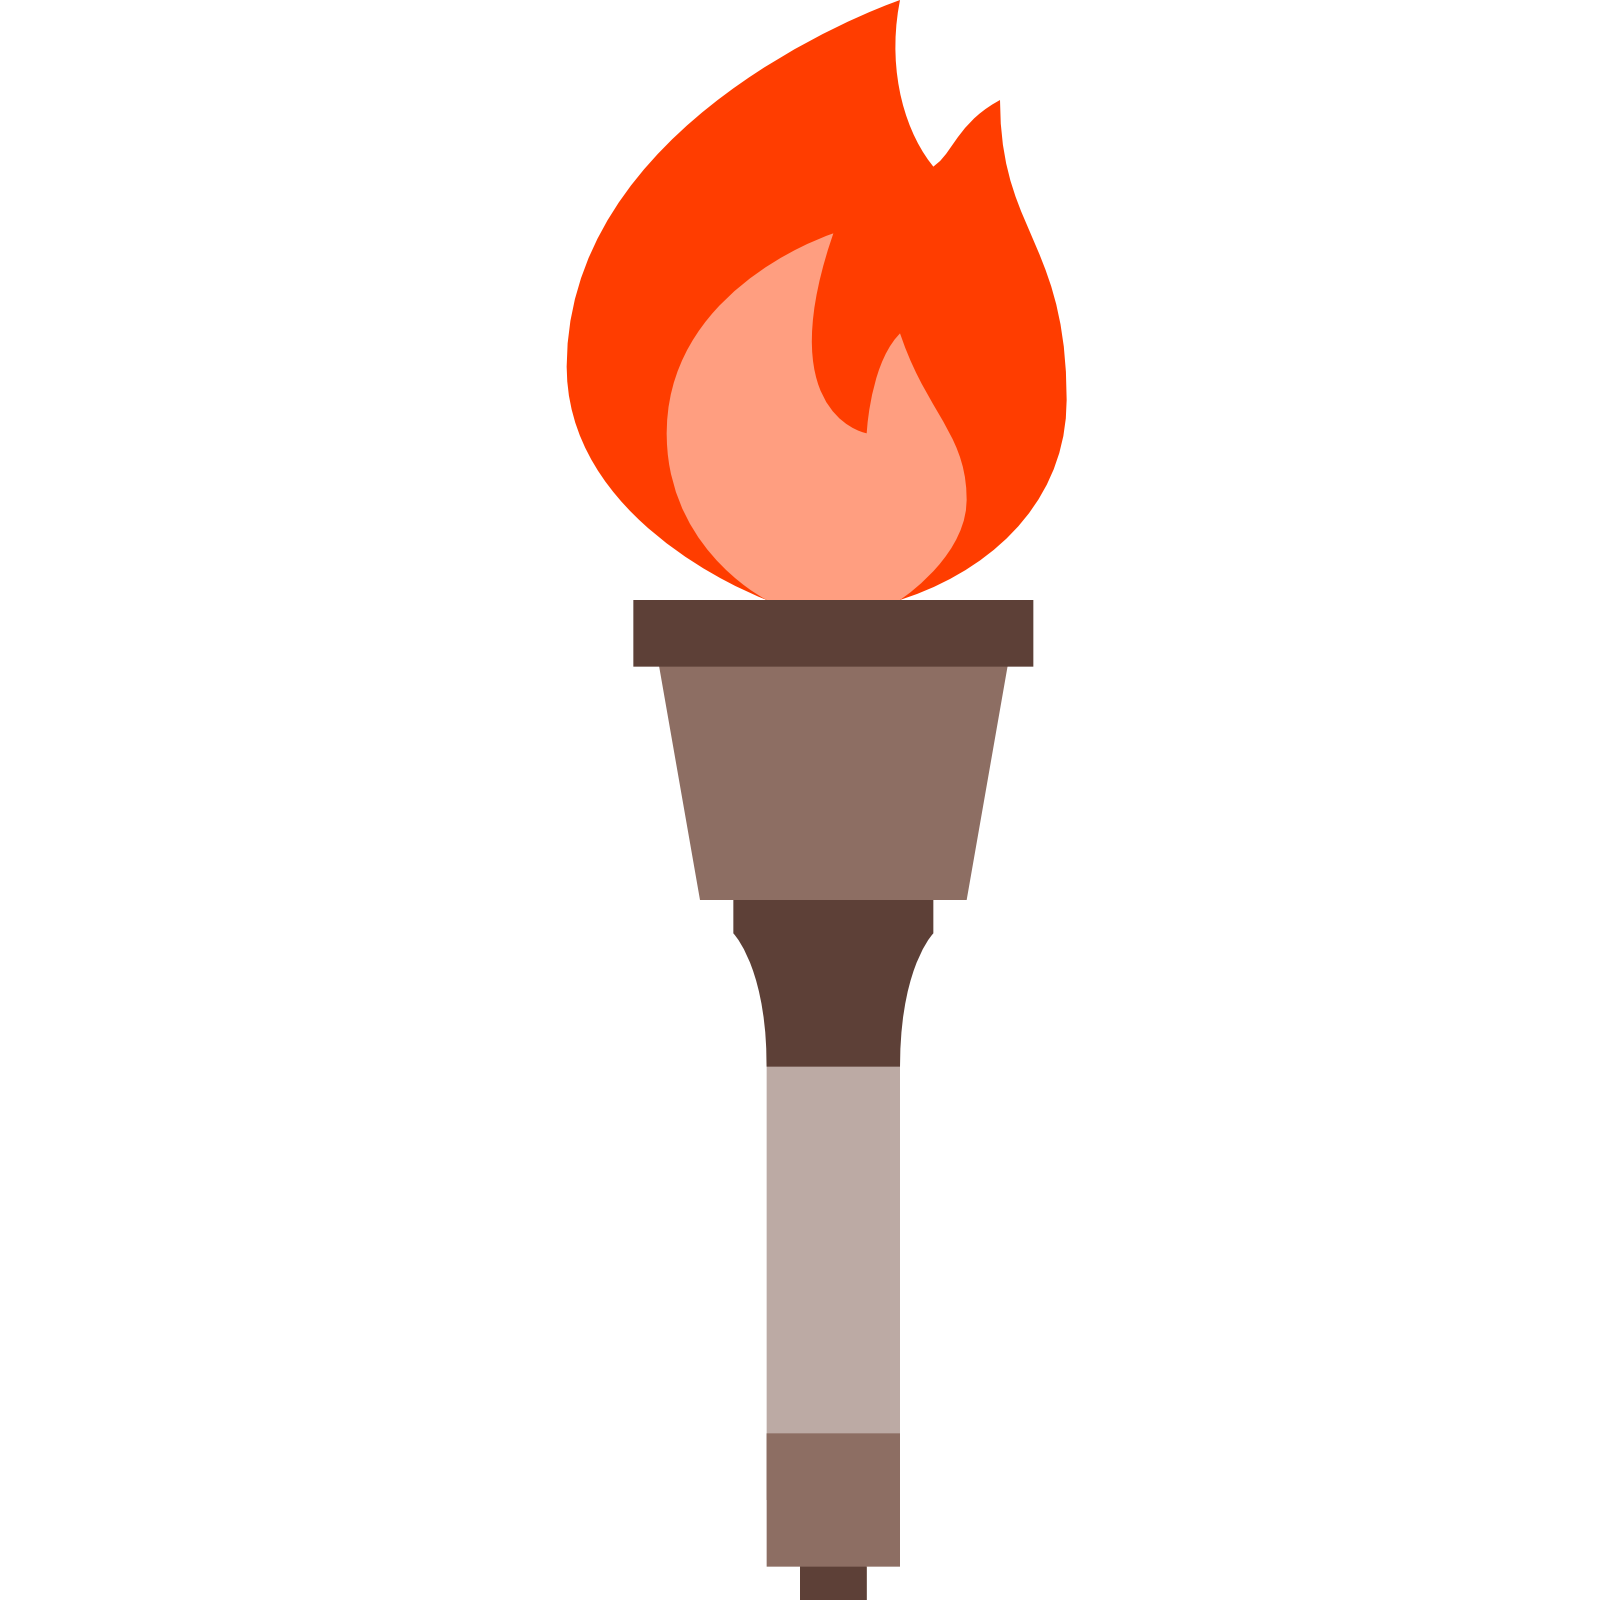 pin Torch clipart icon #4 - Torch HD PNG